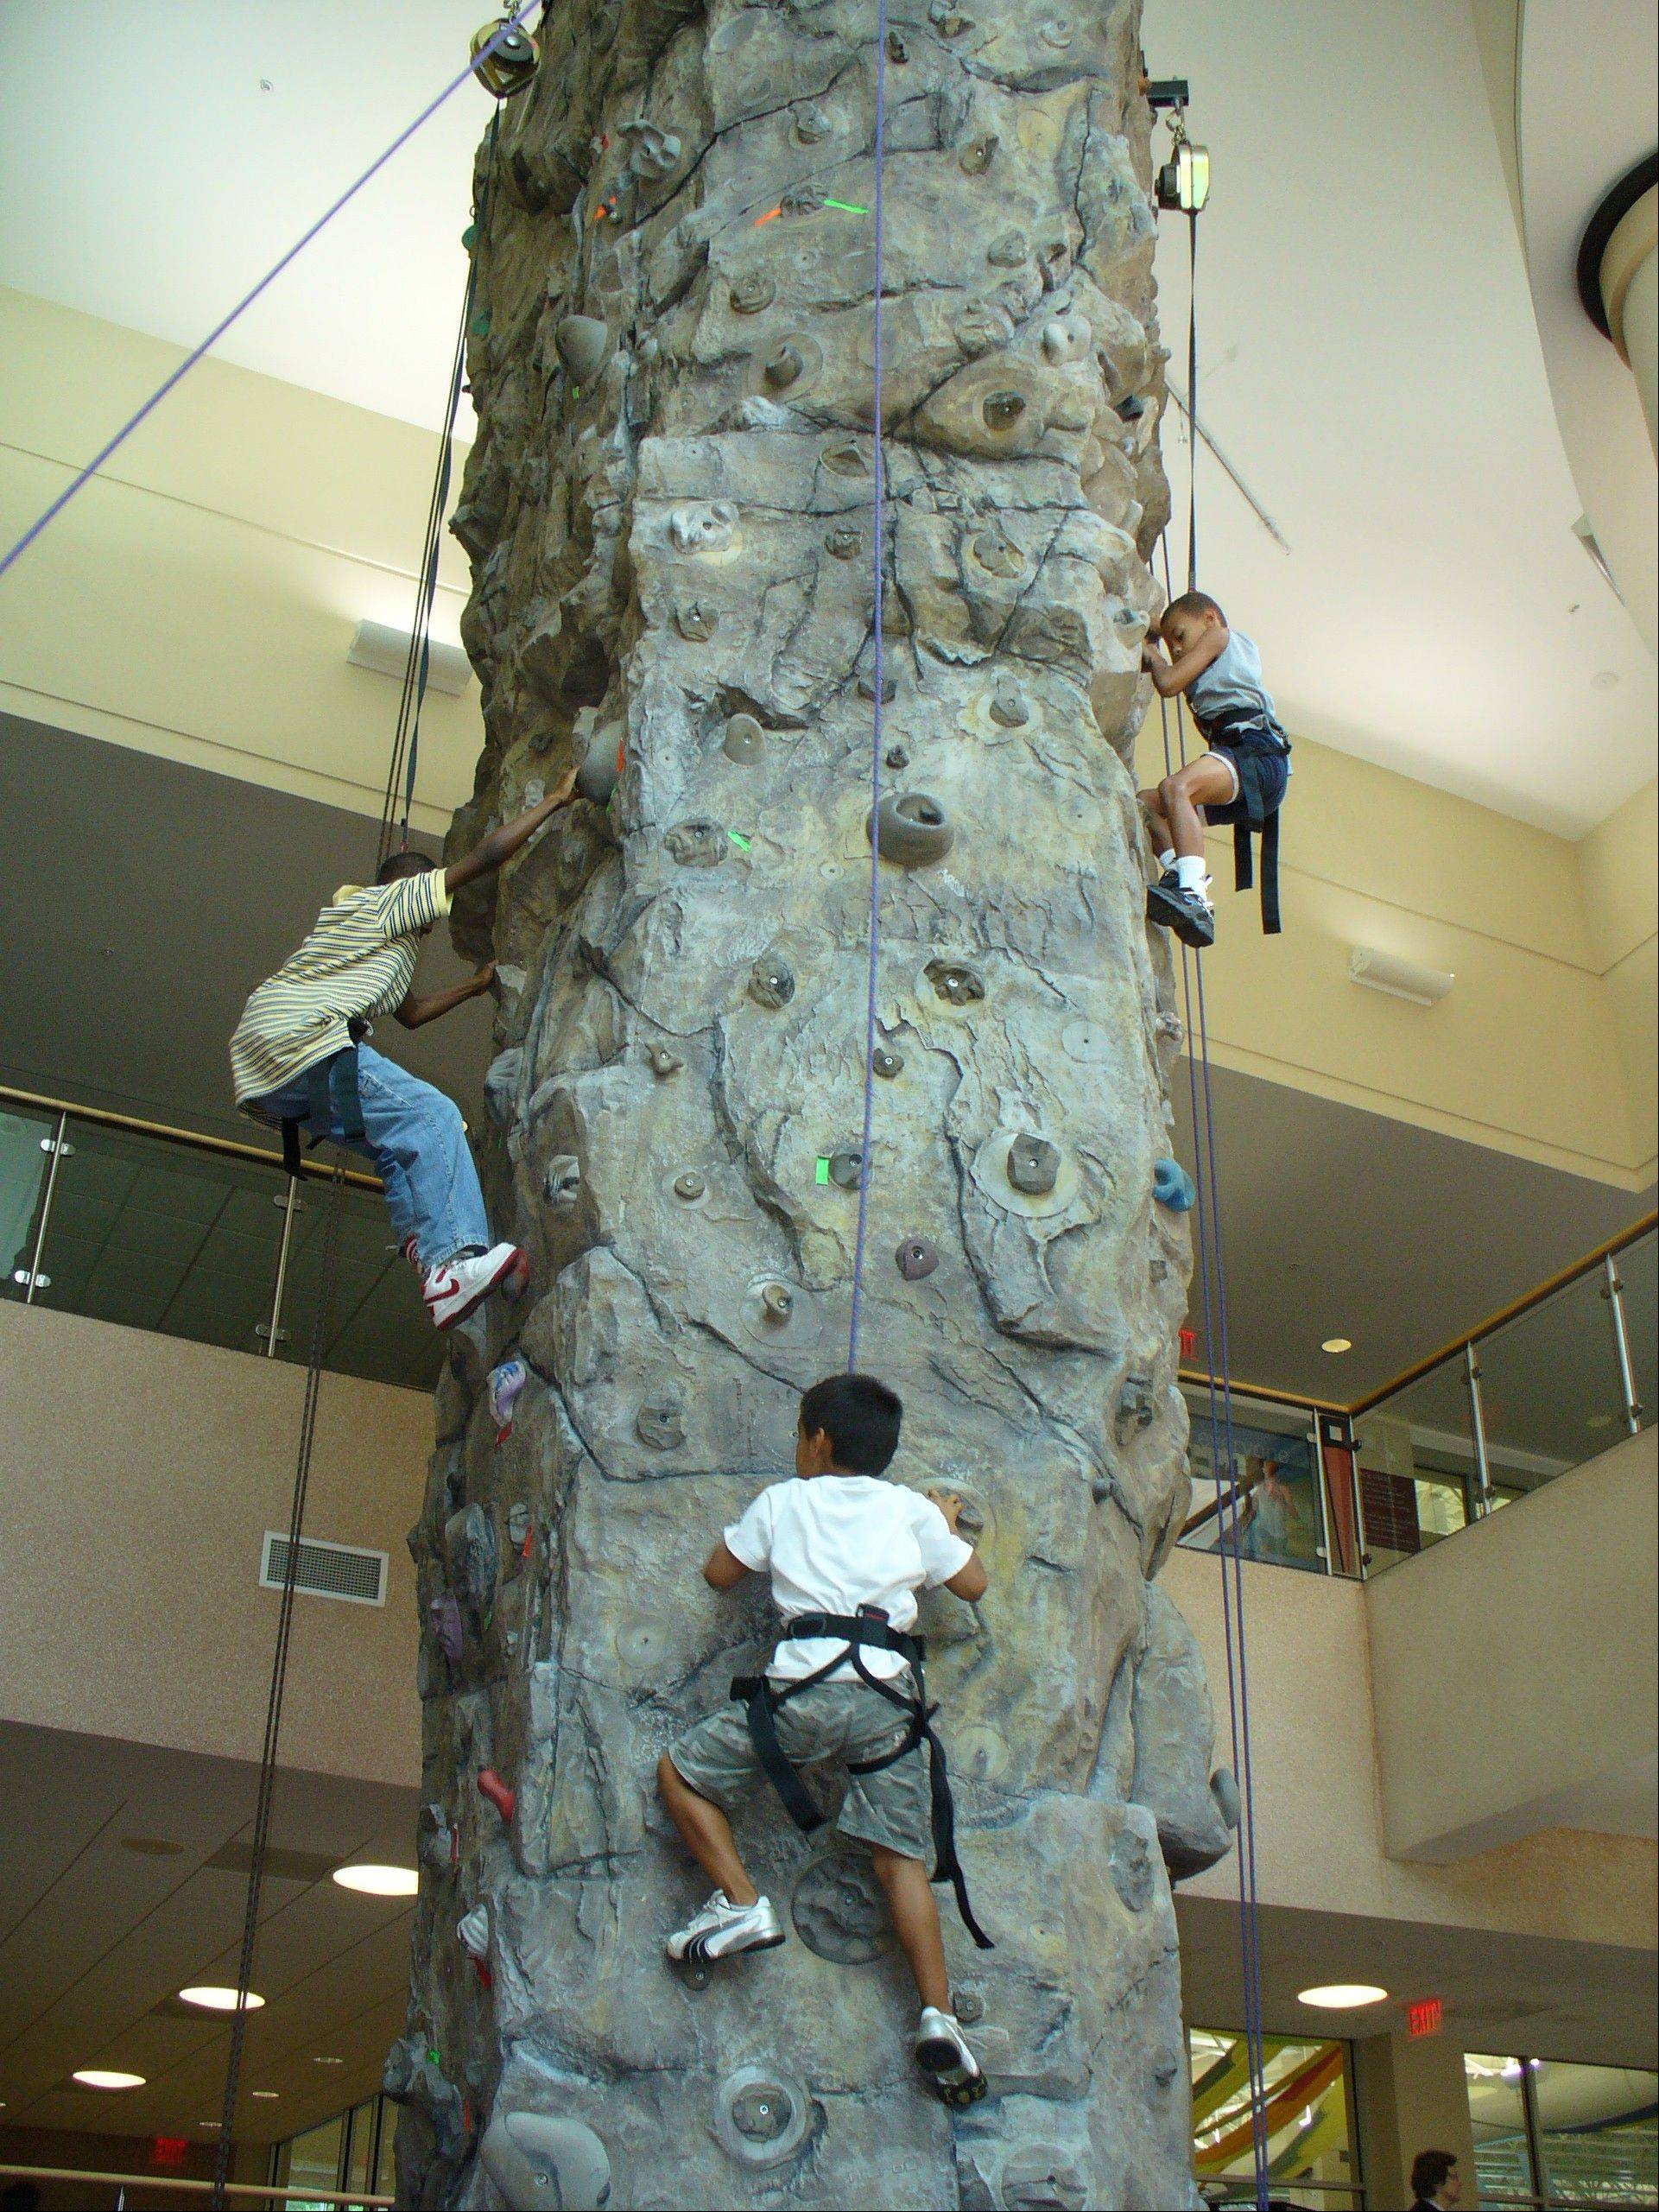 The Centre of Elgin's climbing wall offers 1,165 square feet of routes for all skill levels.